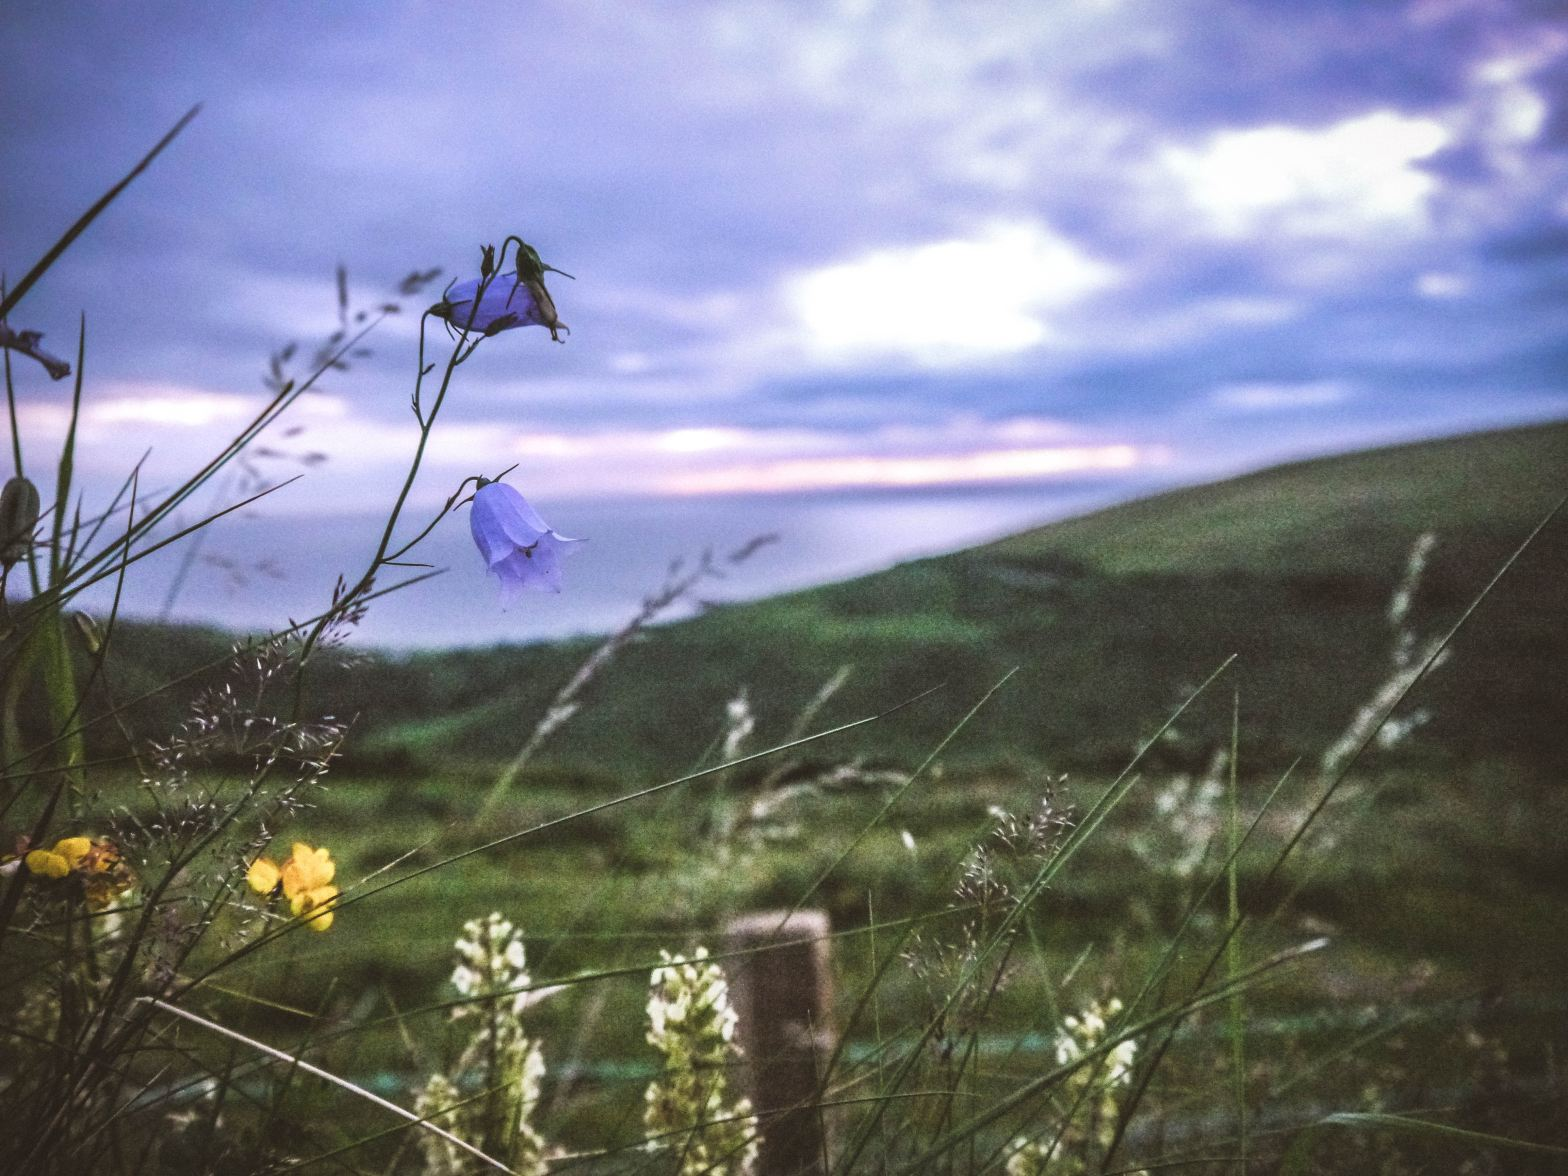 Image shows a fence and wildflowers in the foreground, hillsides behind